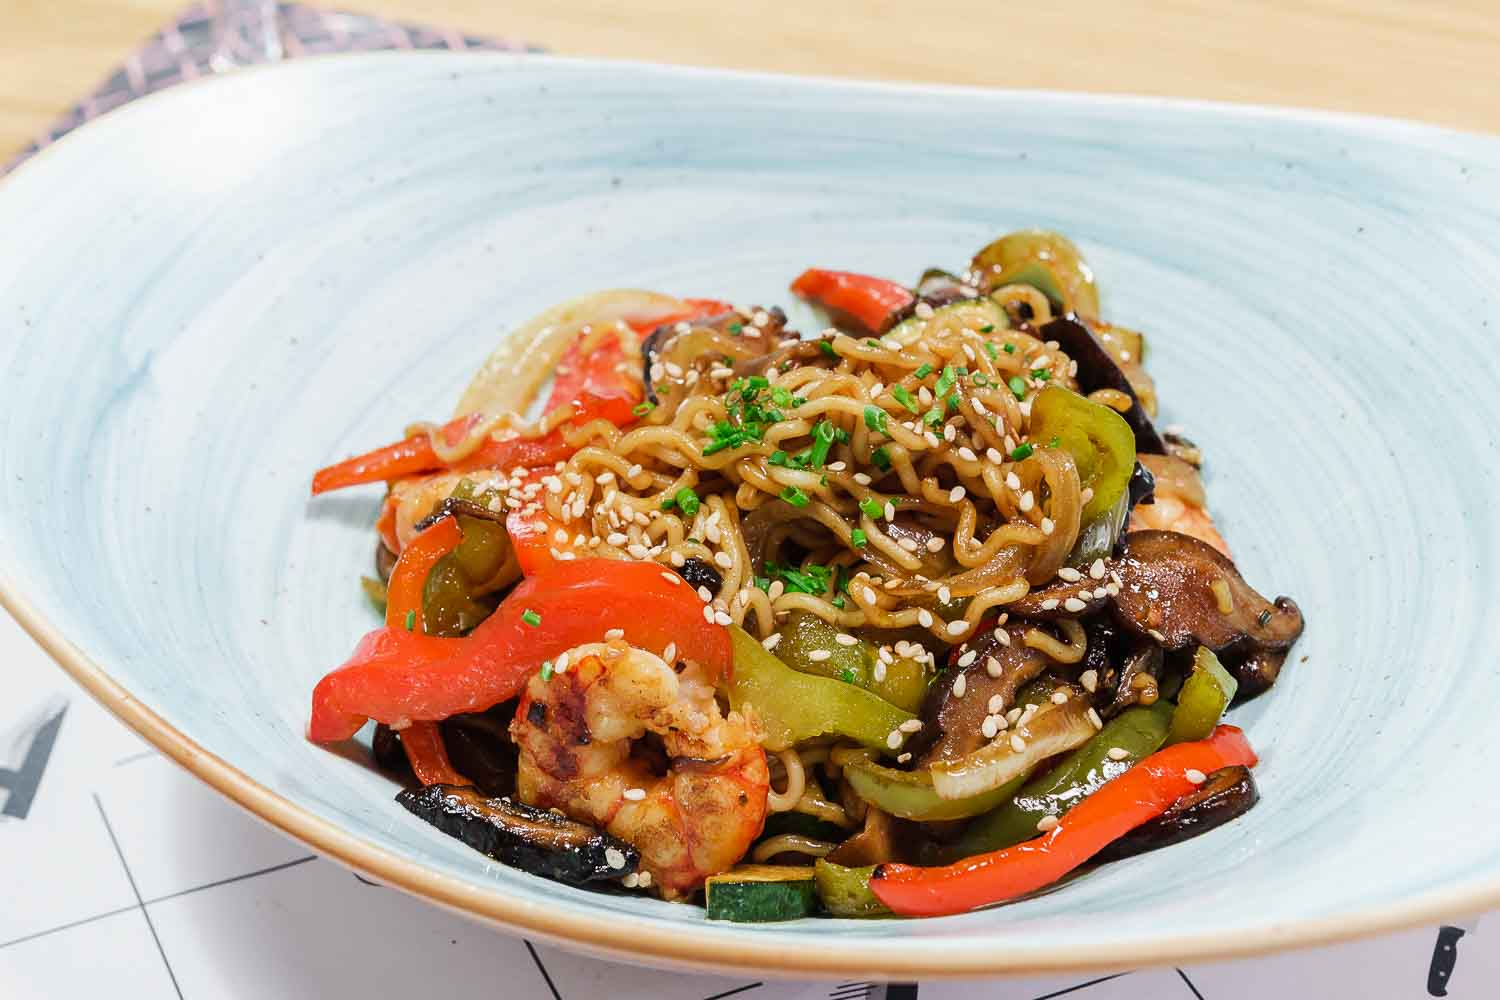 Noodles with vegetables and oyster sauce